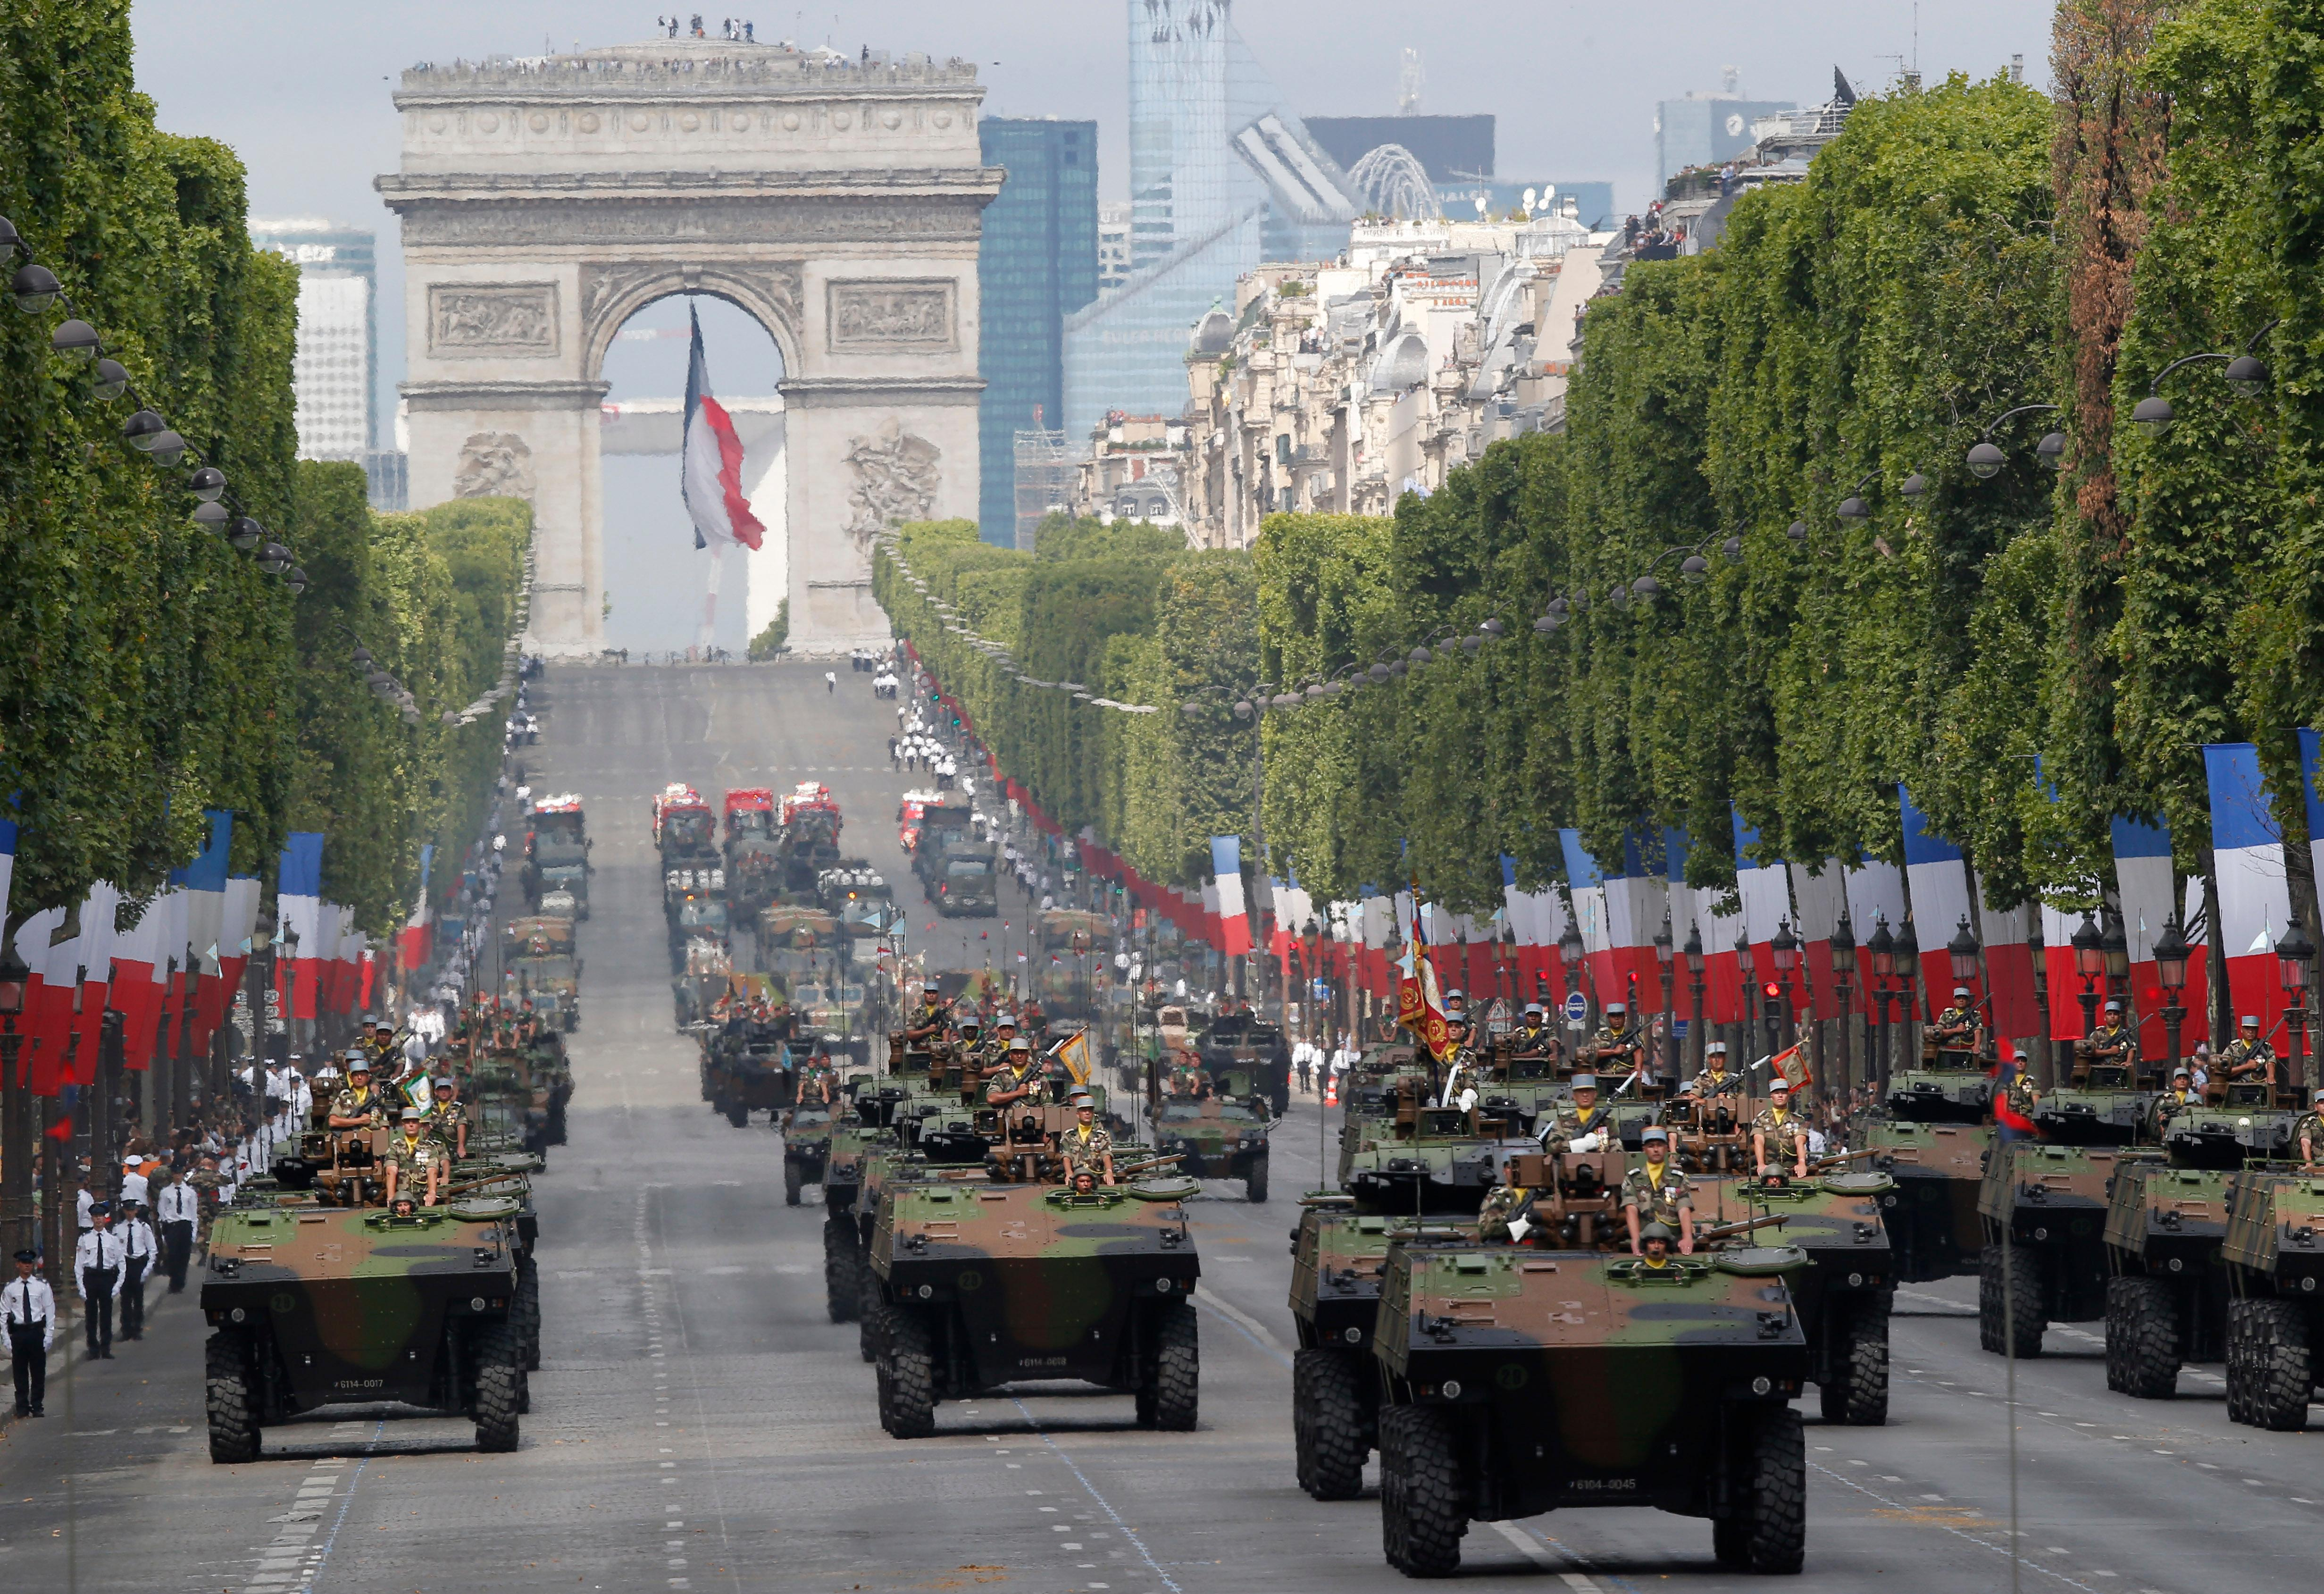 Light armed vehicles drive down the Champs Elysees avenue in Paris, France, as part of Bastille Day parade Tuesday, July 14, 2015. French anti-terrorist forces join the traditional military parade celebrating Bastille Day, as the country's leadership tries to show its muscle against extremists abroad and at home. Mexico's president is the guest of honor at this year's event marking France's biggest holiday. (AP Photo/Michel Euler)